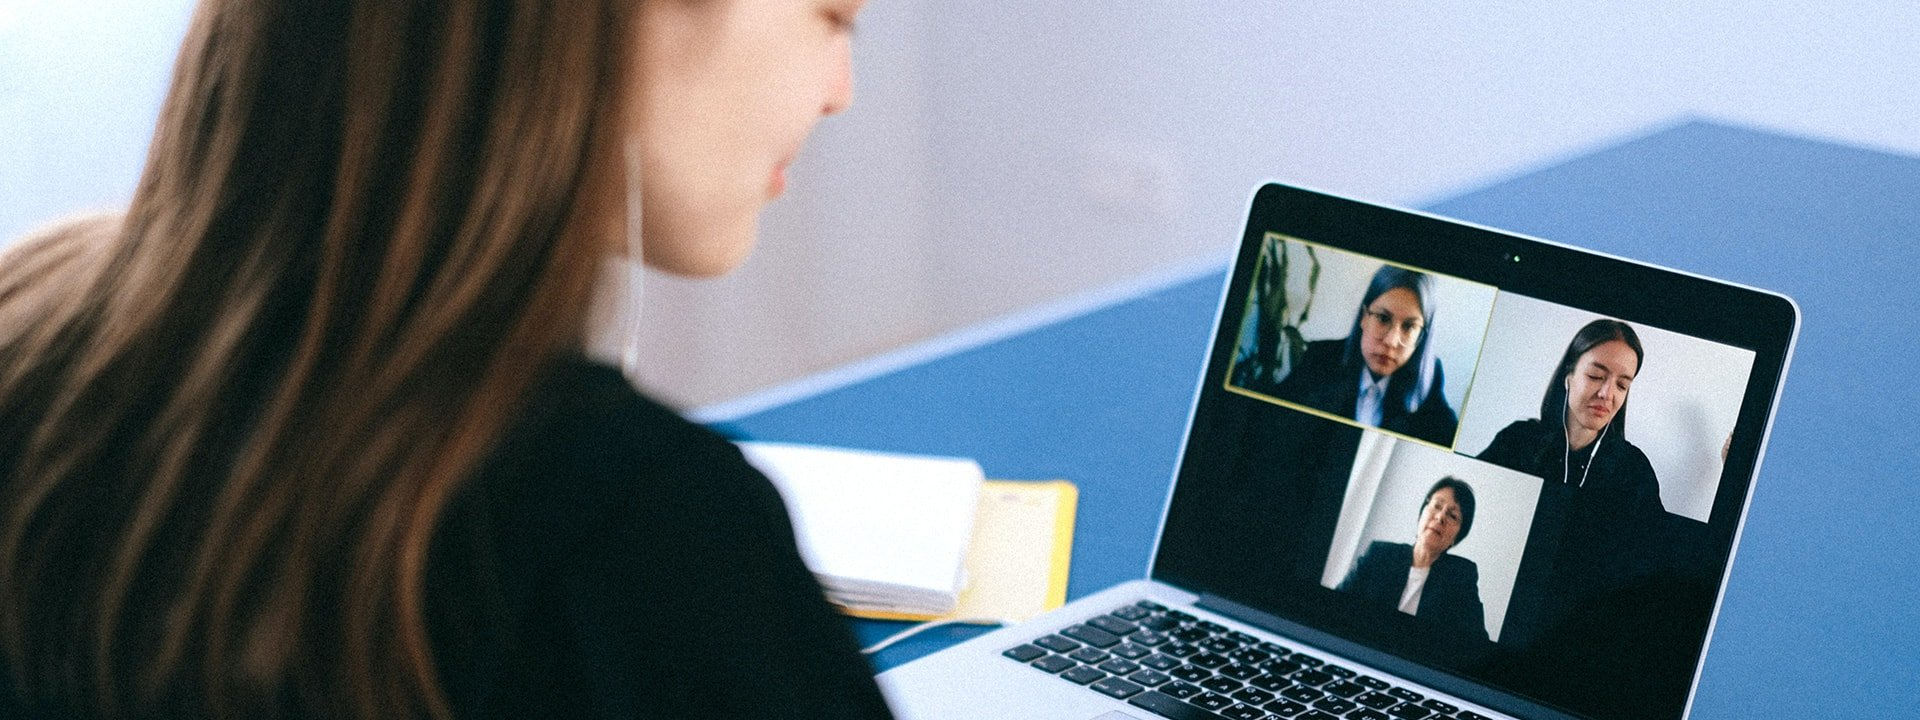 woman in remote meeting on a laptop